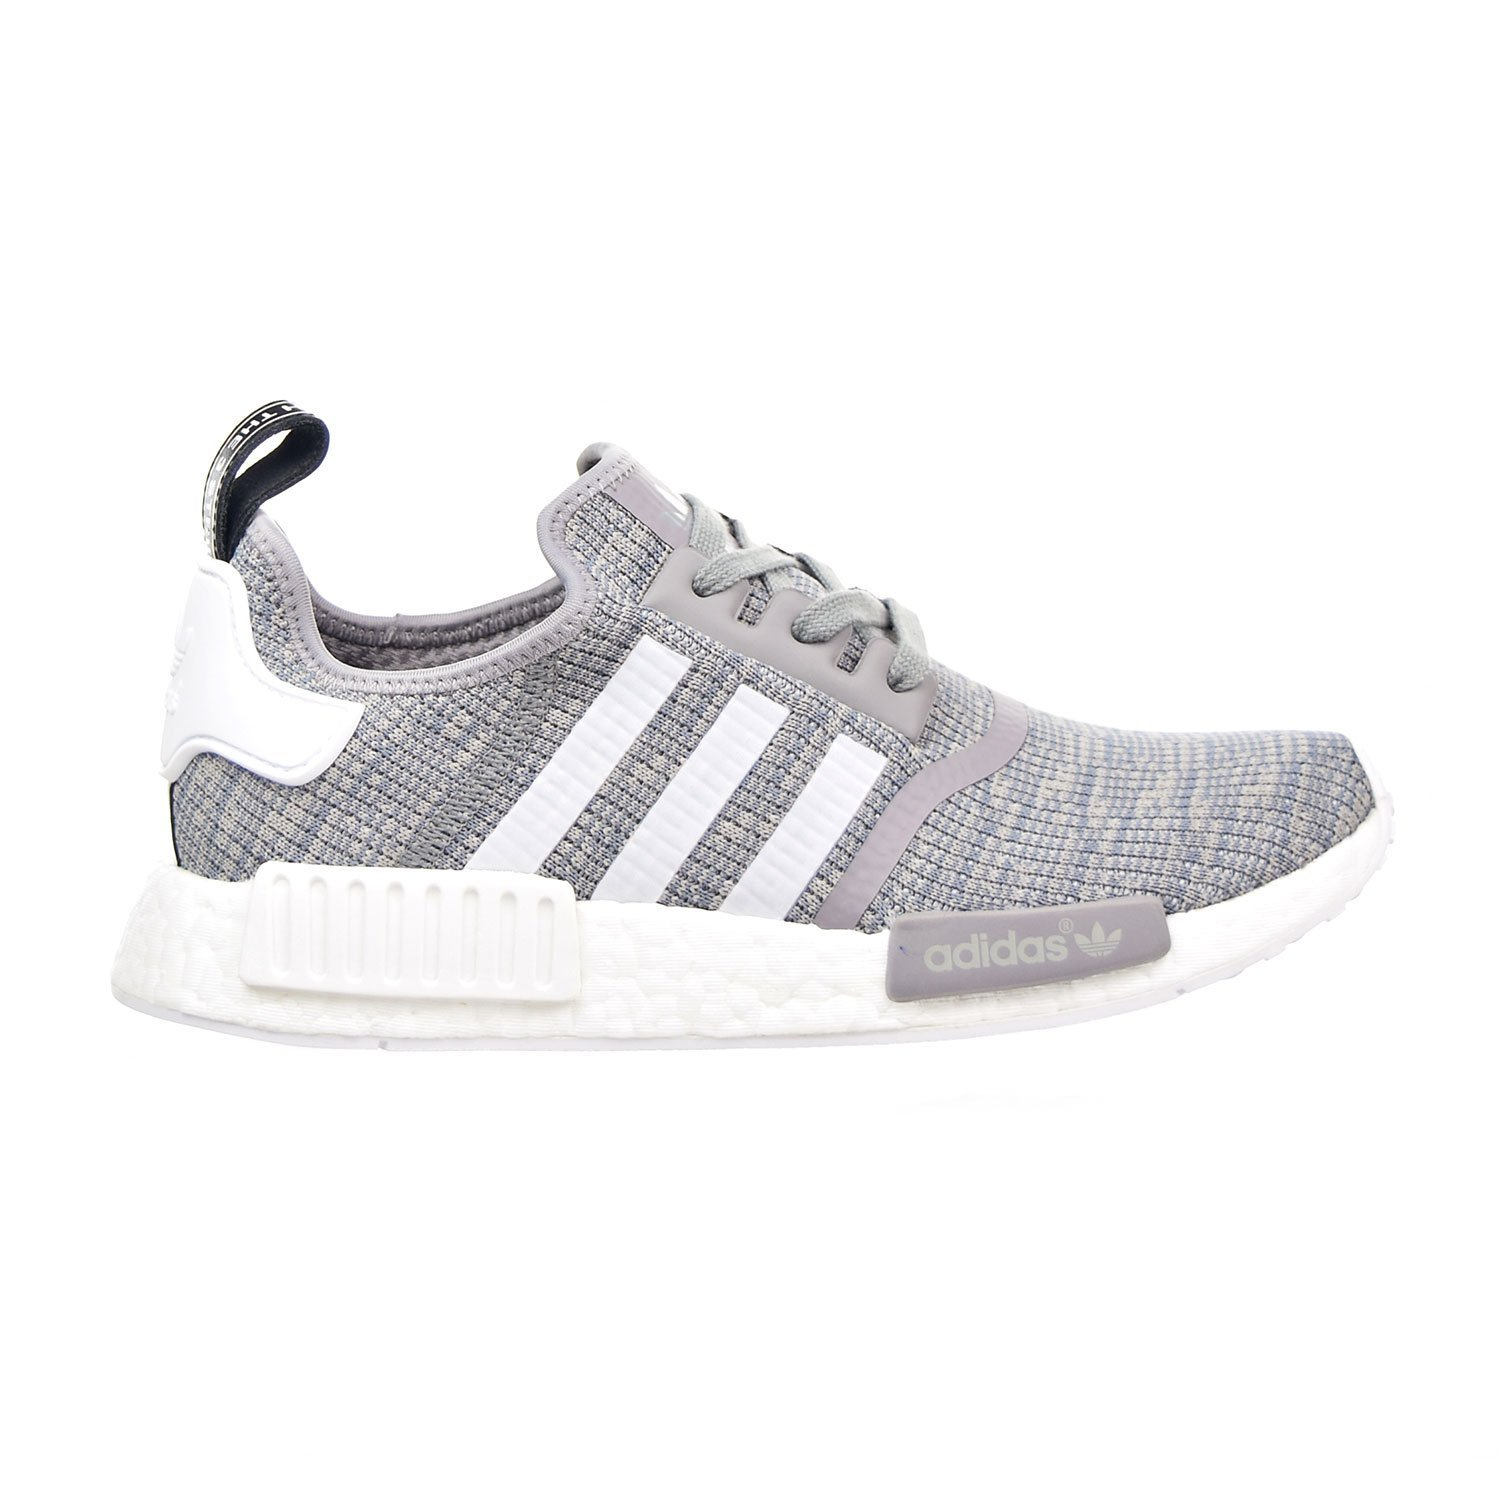 adidas originals amazon